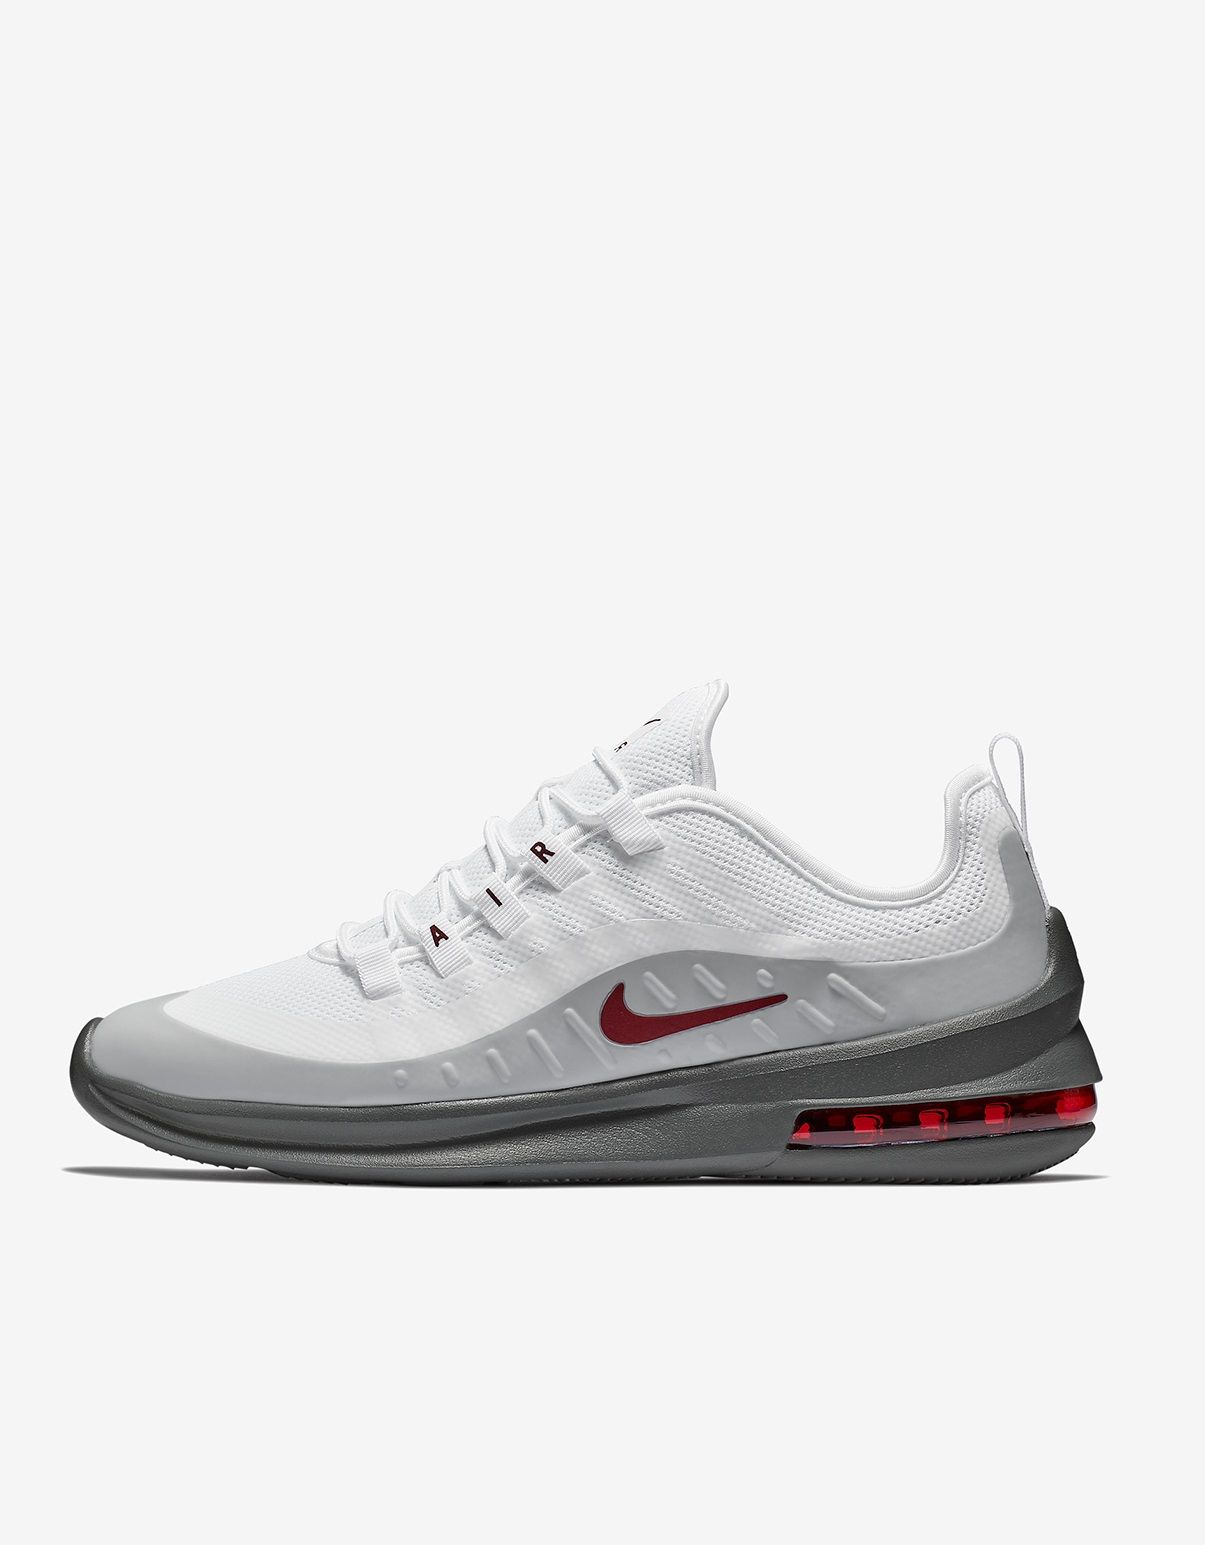 Nike Air Max Axis | sneakers nike en 2019 | Zapatos, Moda